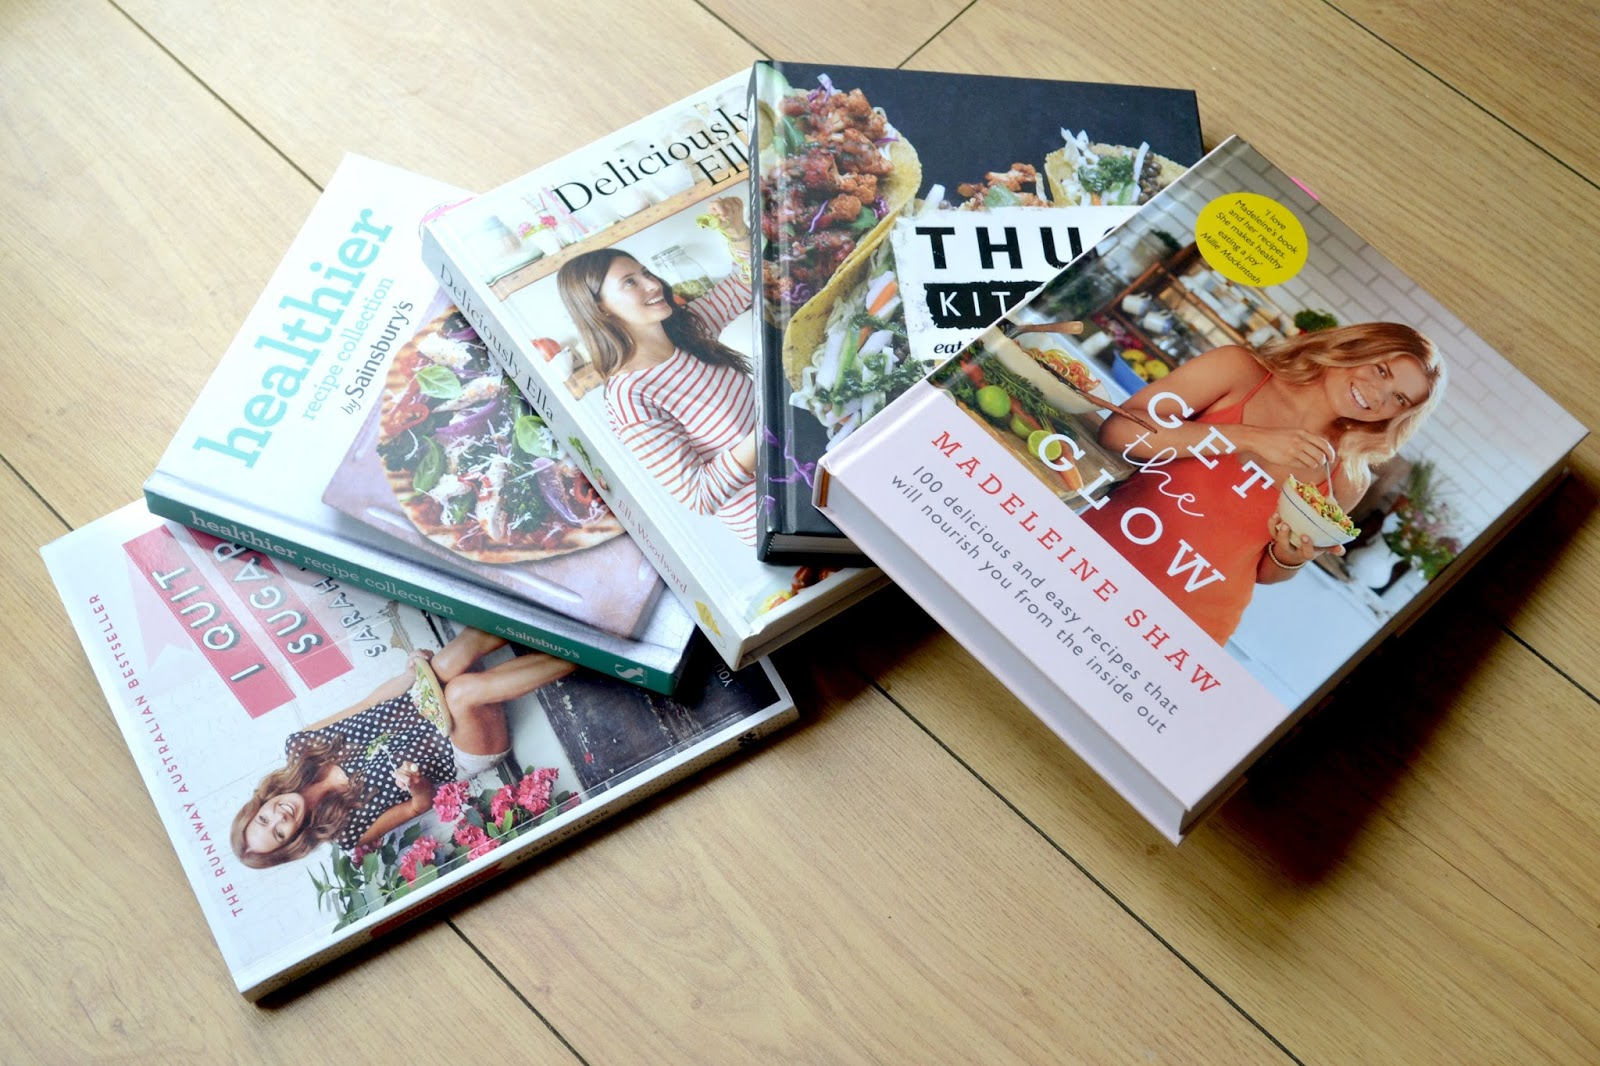 Top 5 Healthy Recipe Books